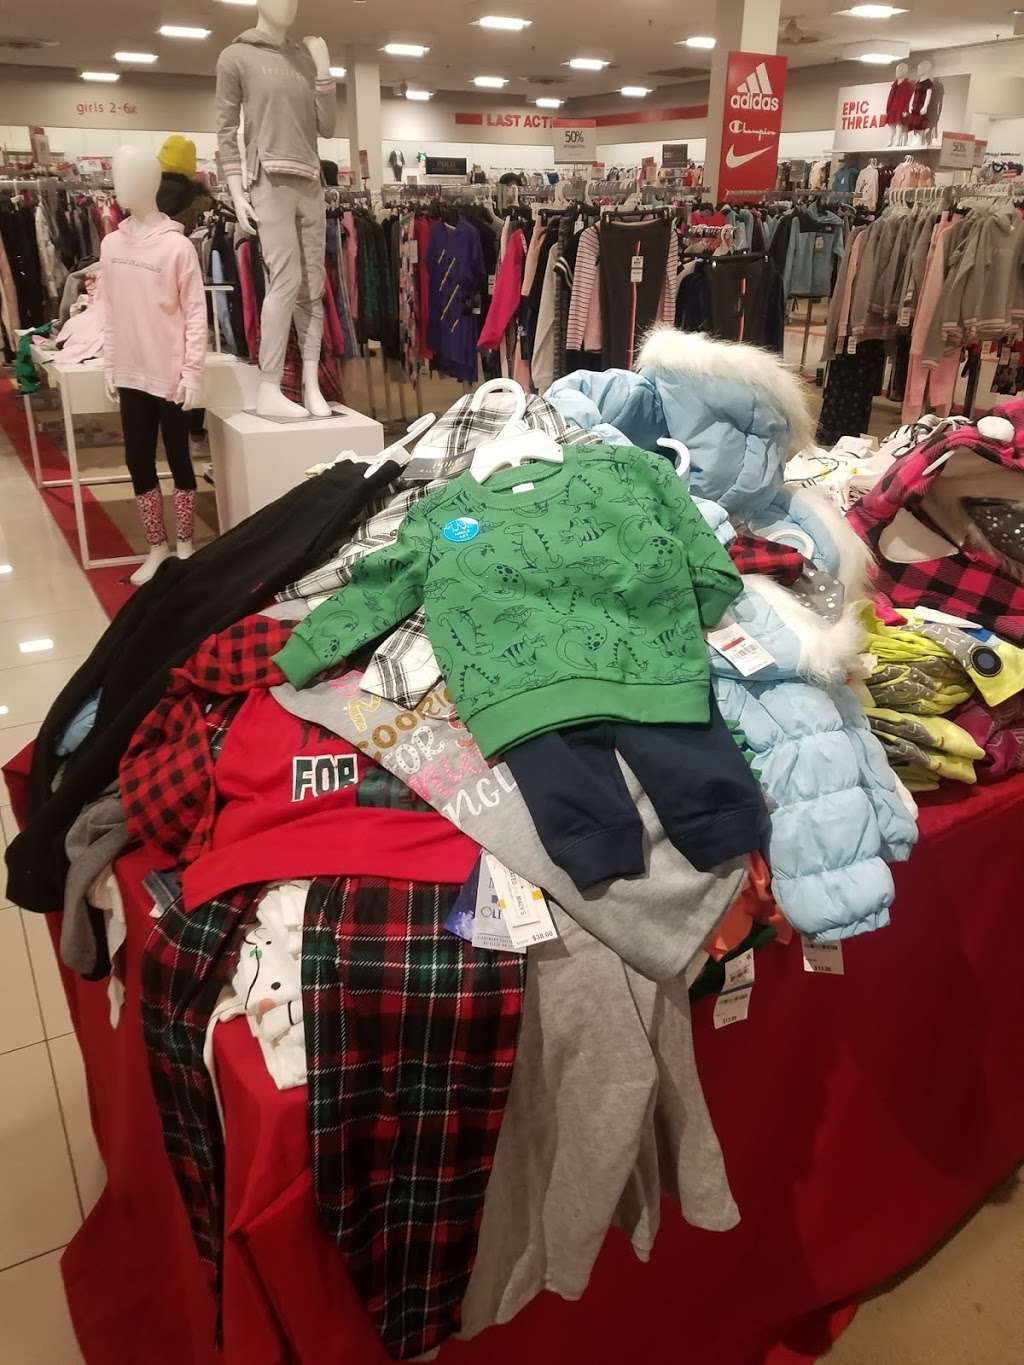 Macys Mens Store - clothing store  | Photo 6 of 9 | Address: 69 Green Acres Rd S, Valley Stream, NY 11581, USA | Phone: (516) 561-6100